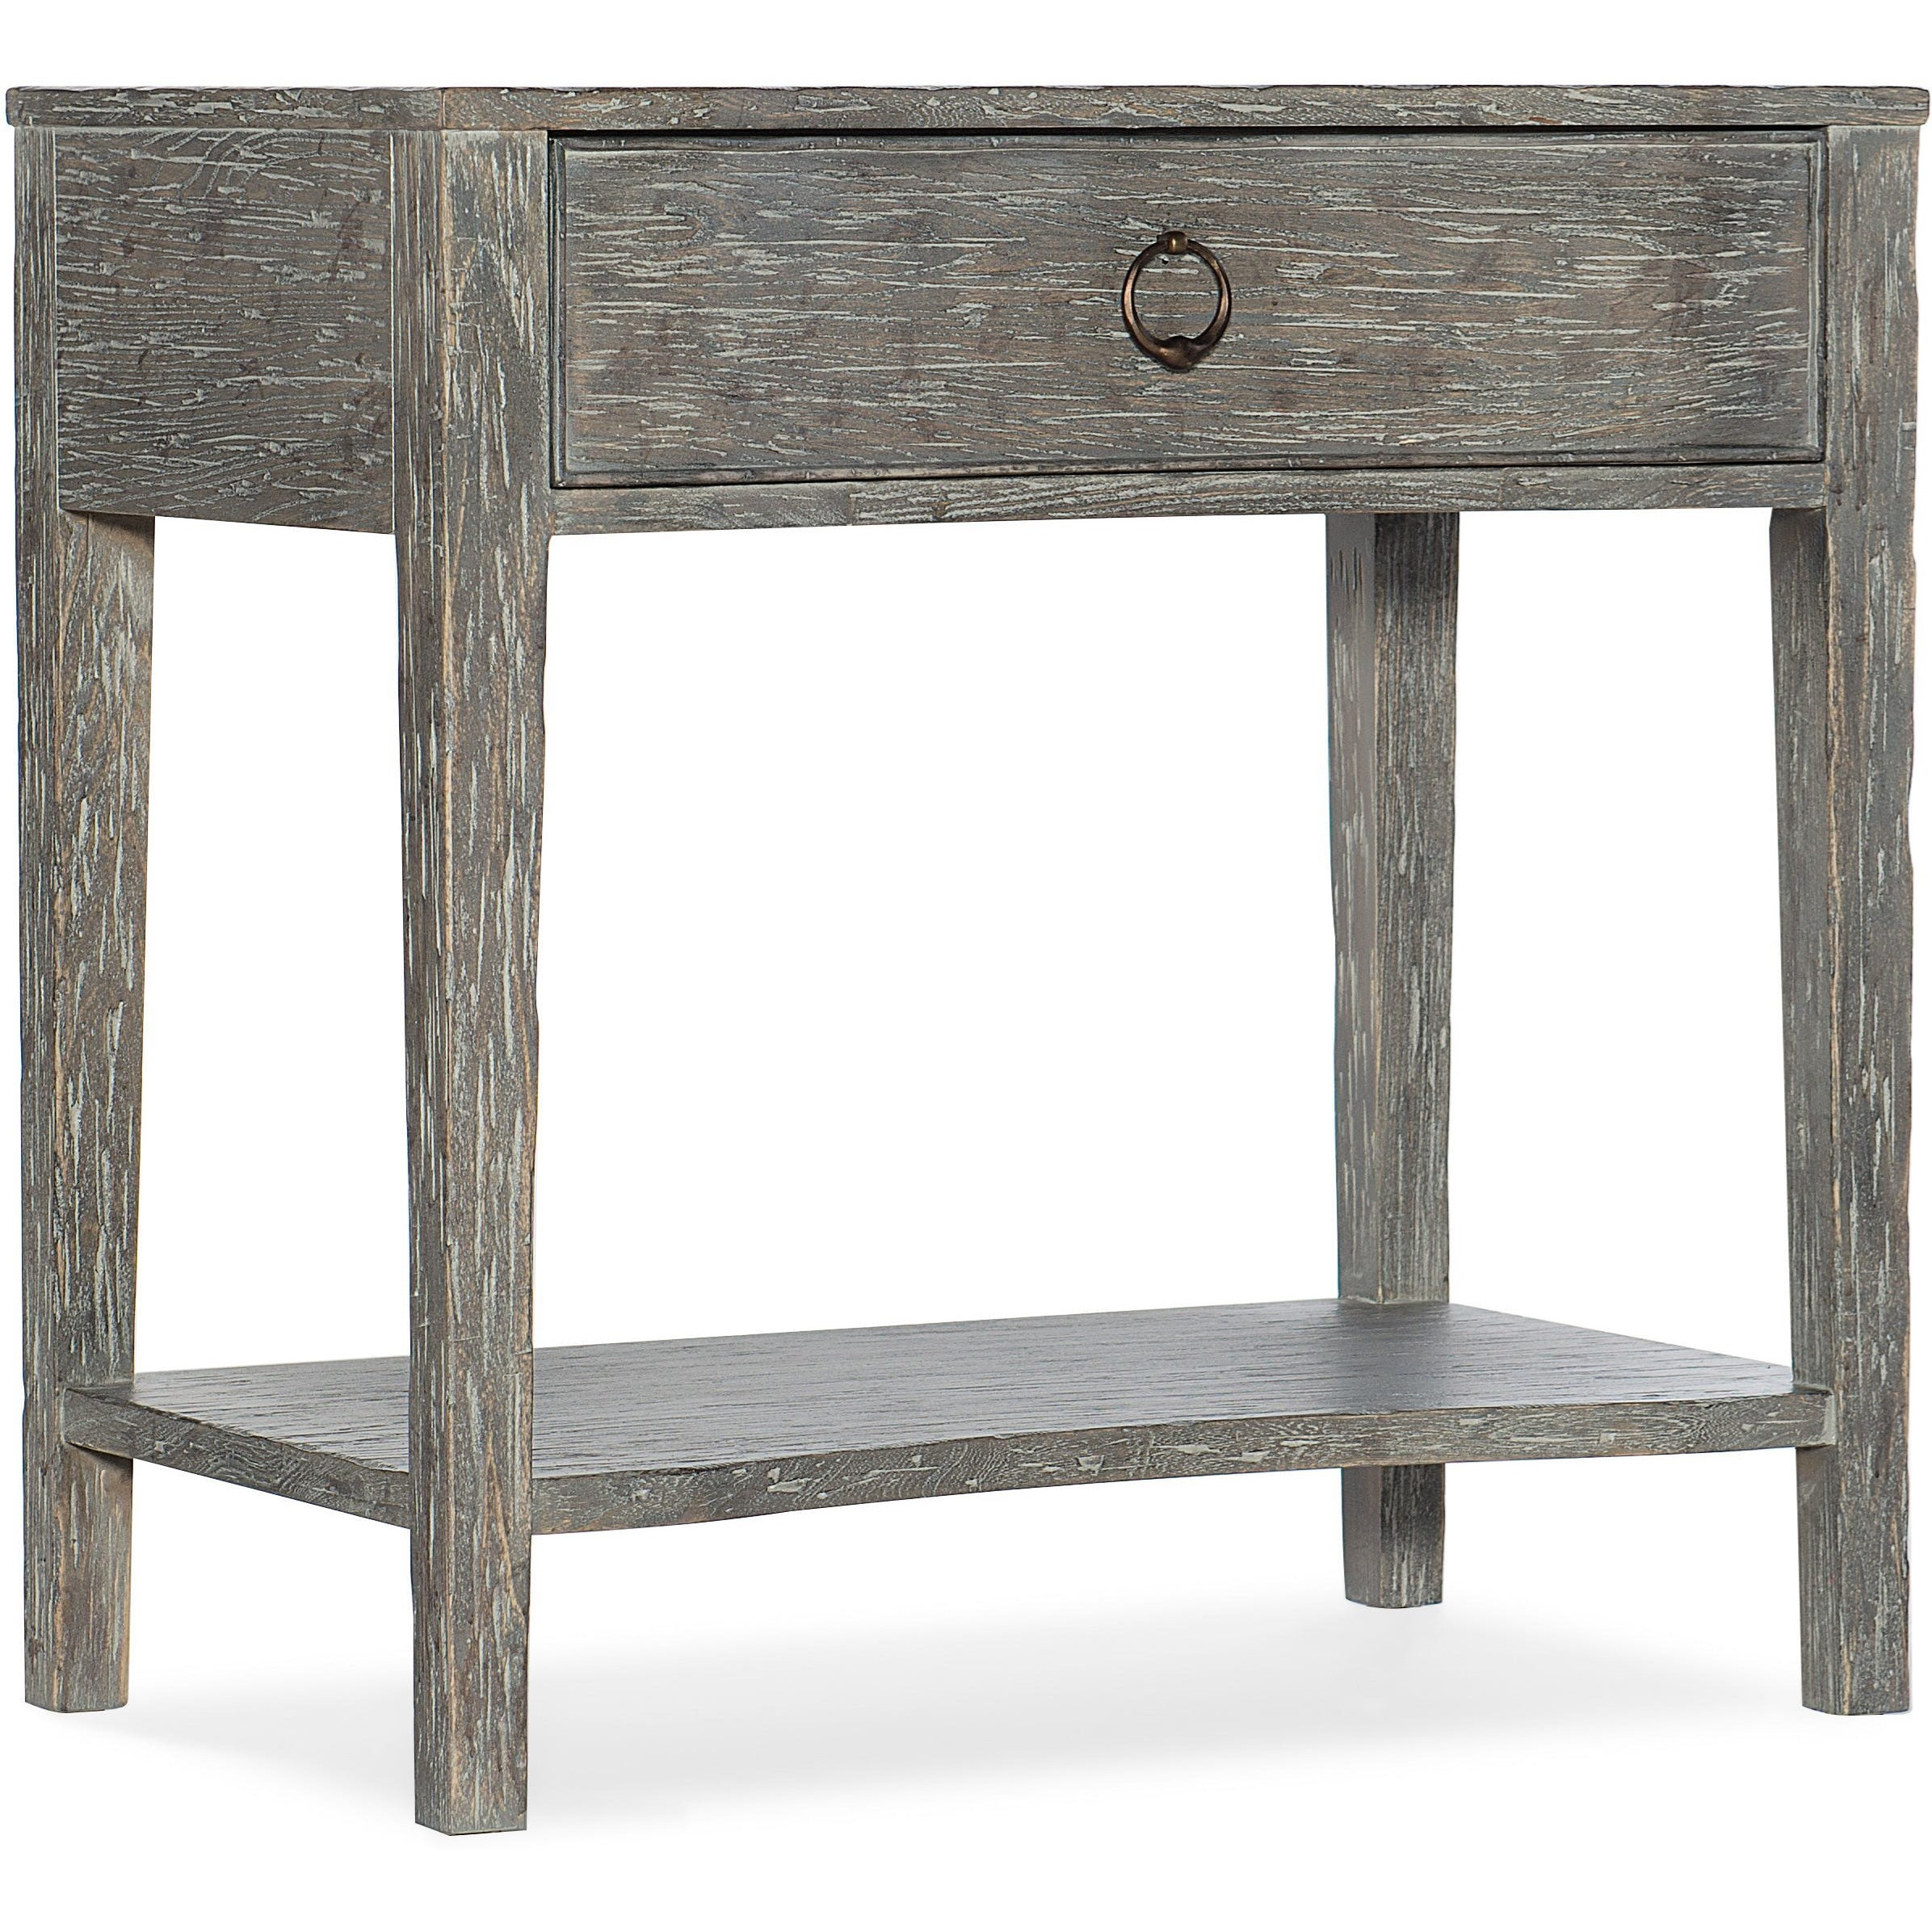 Beaumont One-Drawer Nightstand by Hooker Furniture at Baer's Furniture